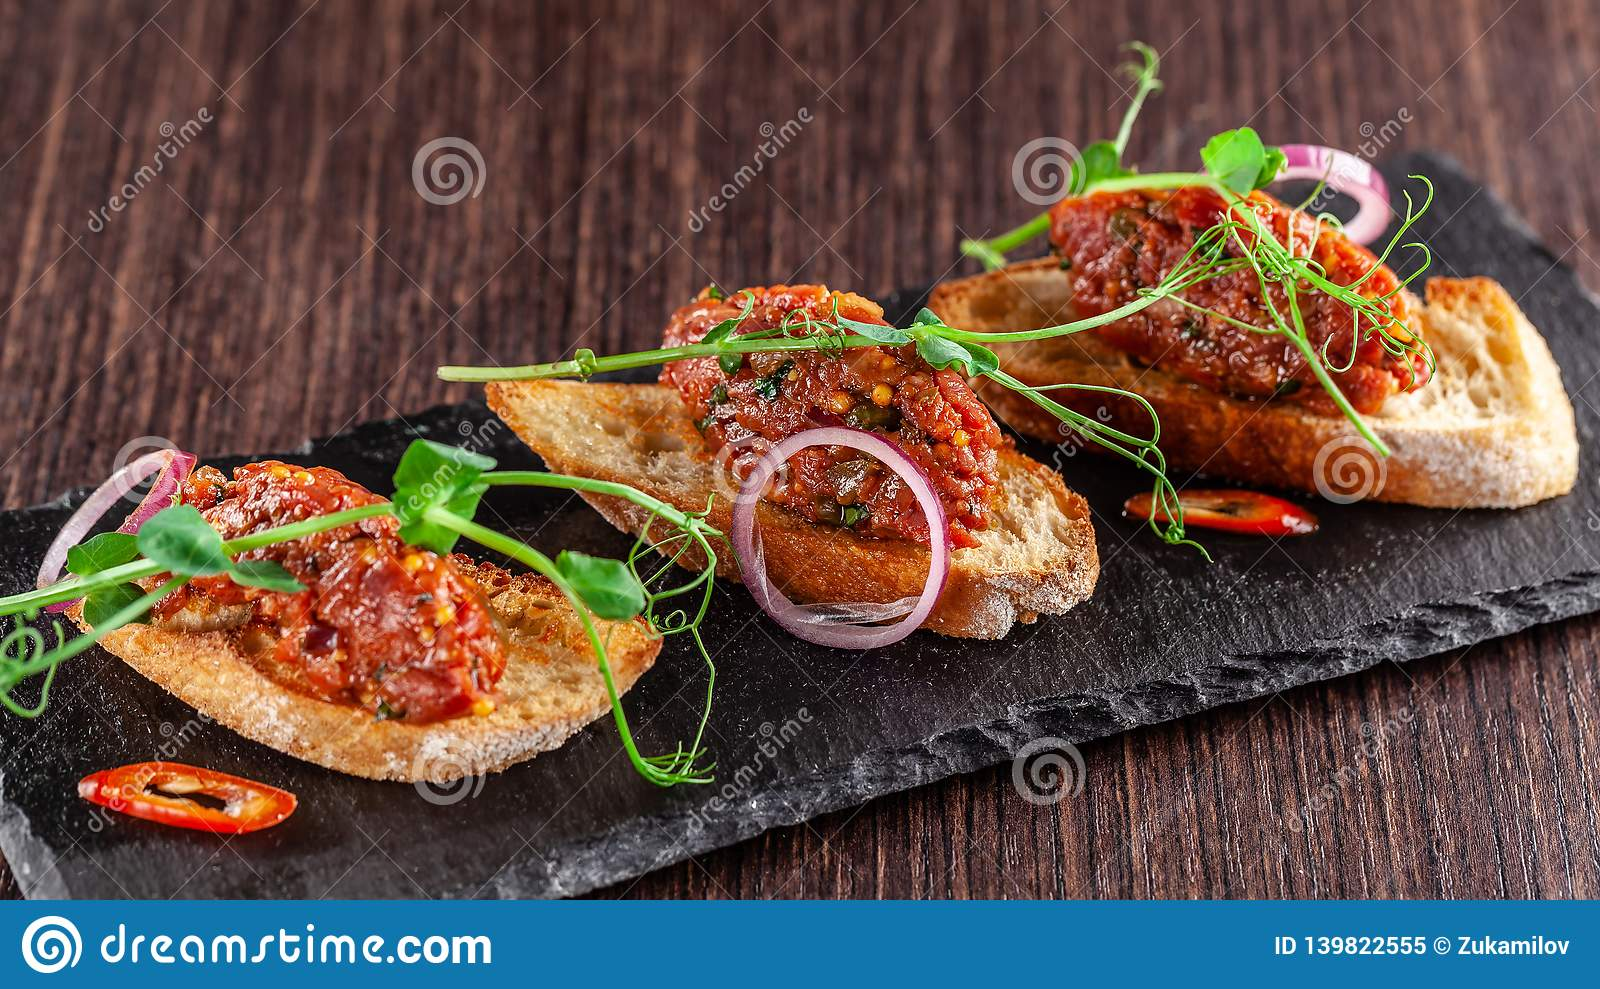 The concept of Mexican cuisine. Beef tartare with parsley, French mustard beans on baguette croutons. A dish in the restaurant